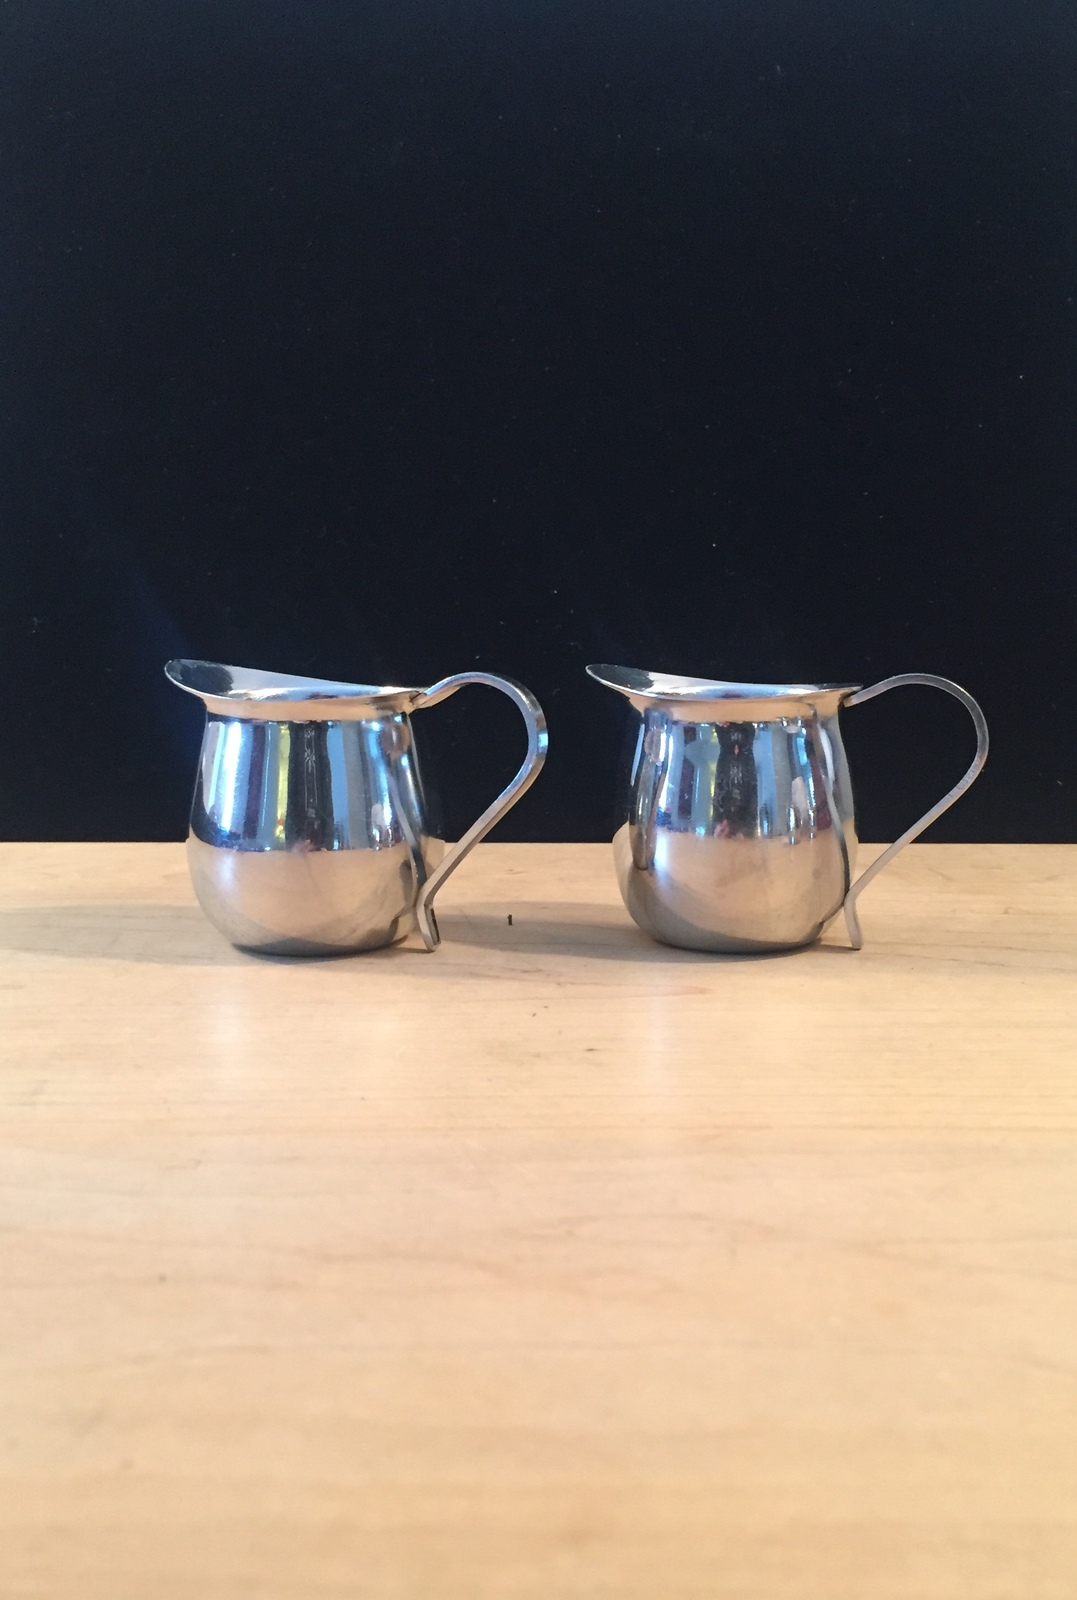 Set of 2 vintage Polar Ware stainless steel creamers/pitchers